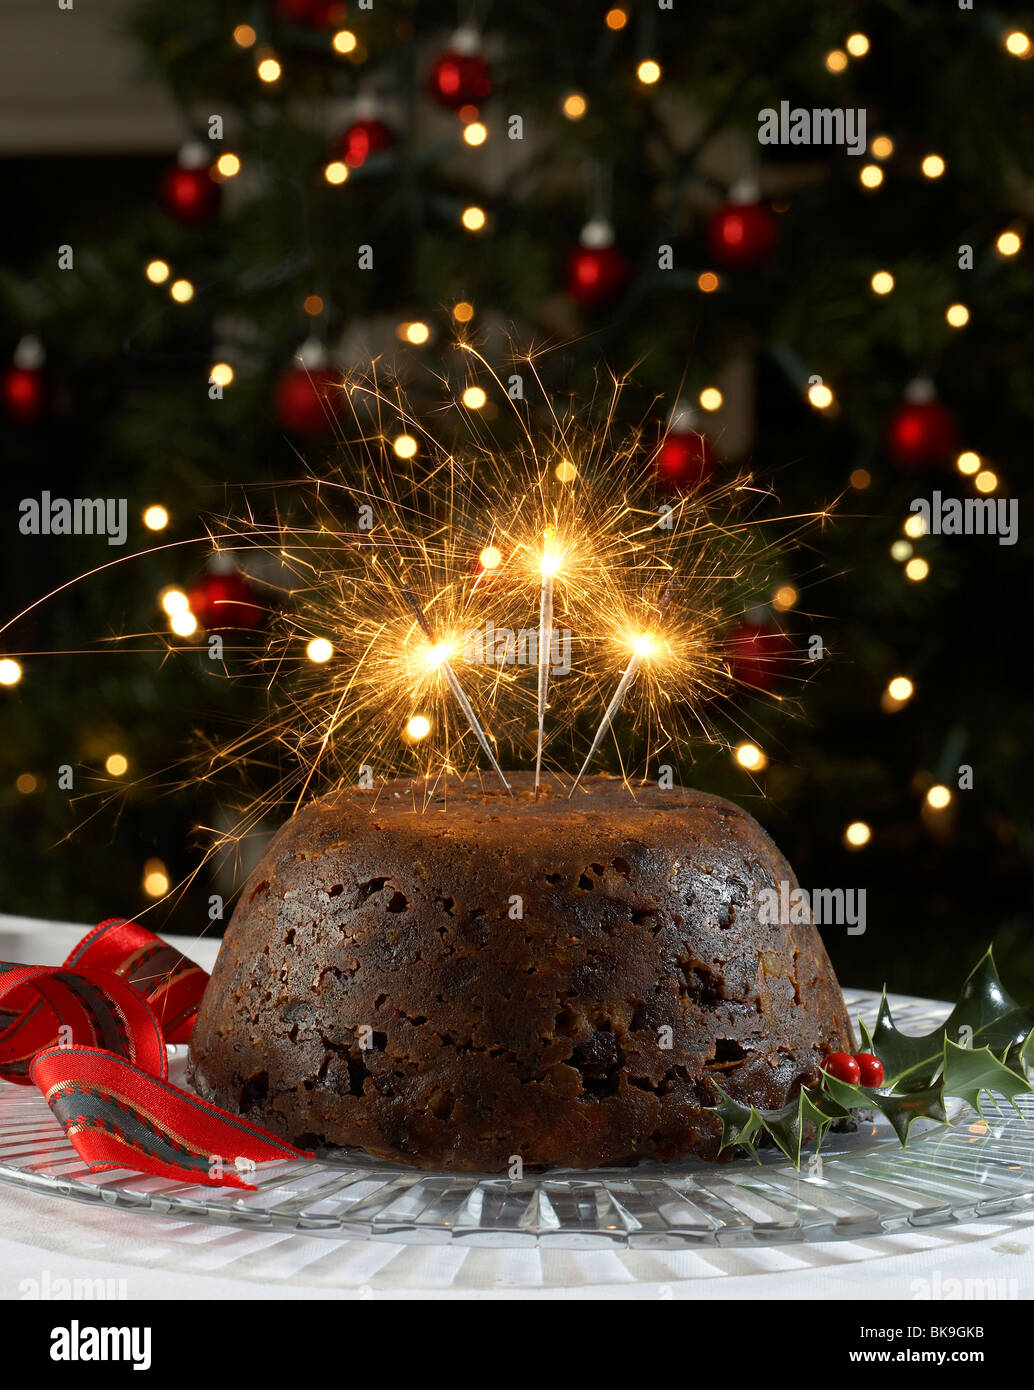 christmas pudding with sparklers - Stock Image